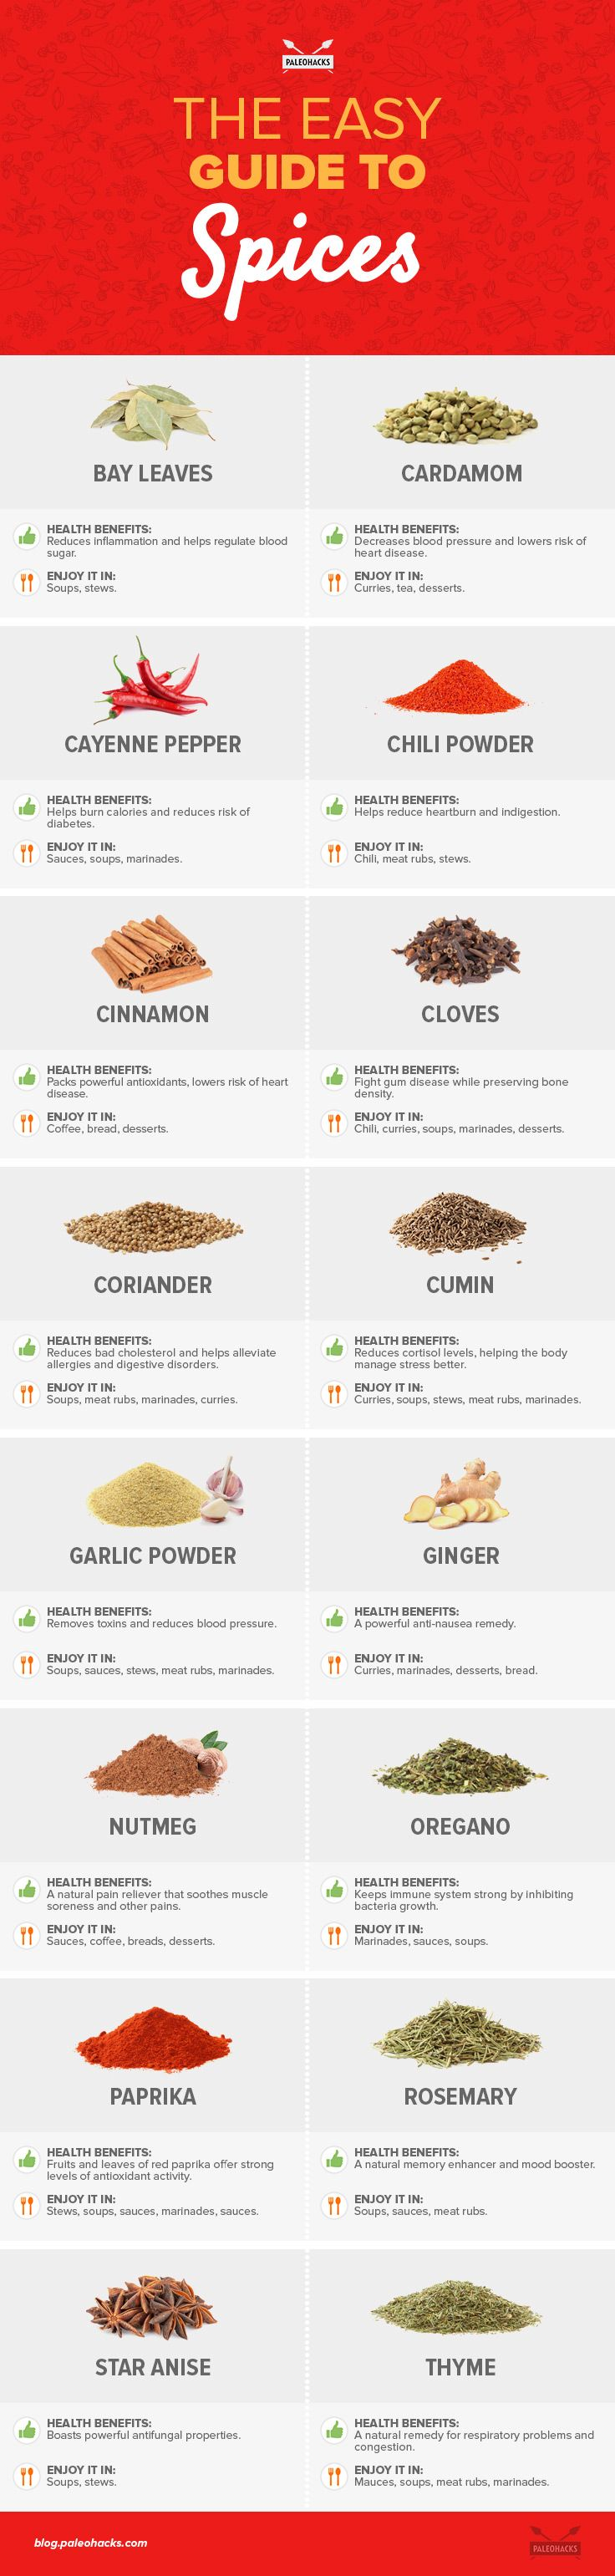 Cinnamon vs. Garlic vs. Oregano... Which spices are the healthiest? For the full spice guide visit us here: http://paleo.co/spiceguide